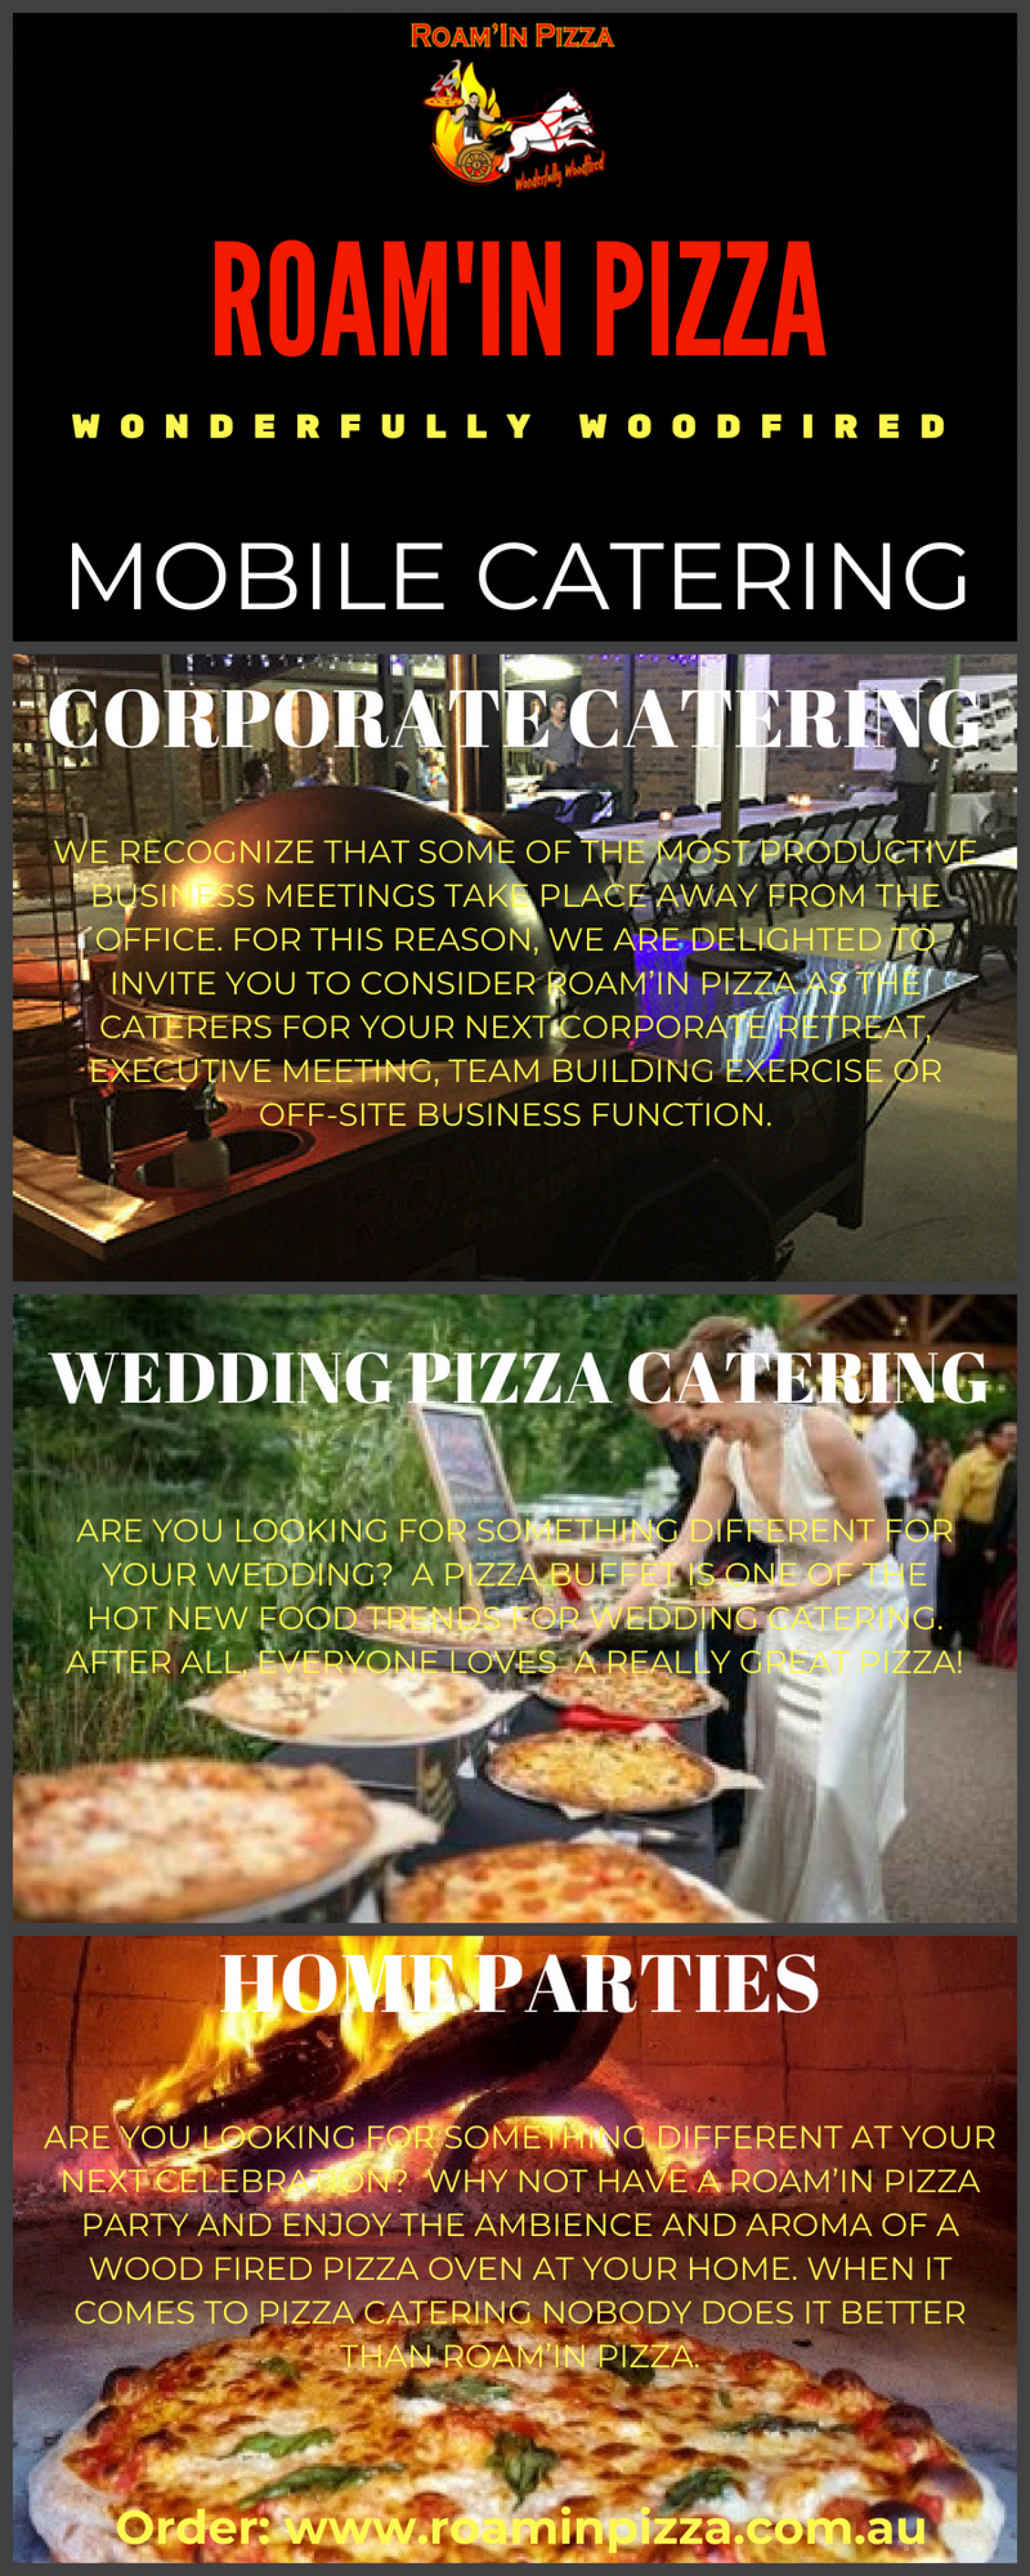 Best mobile pizza catering Brisbane - Roam'in Pizza Infographic